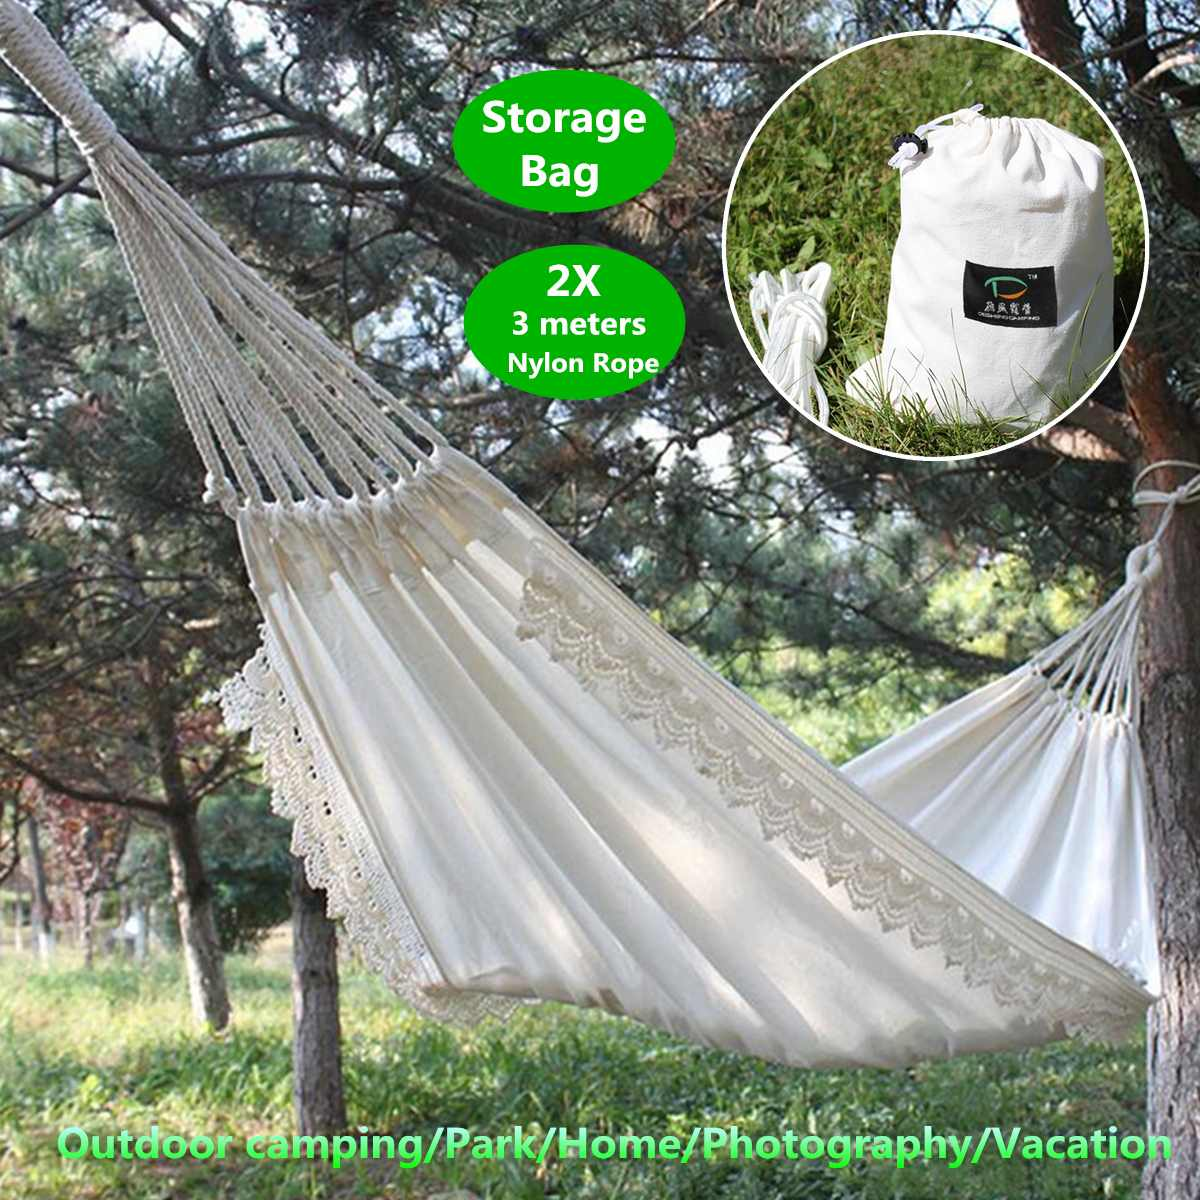 Lace Outdoor Mosquito Net Parachute Hammock Camping Hanging Sleeping Bed Swing Portable Double Chair Hamac White футболка mango футболка carol